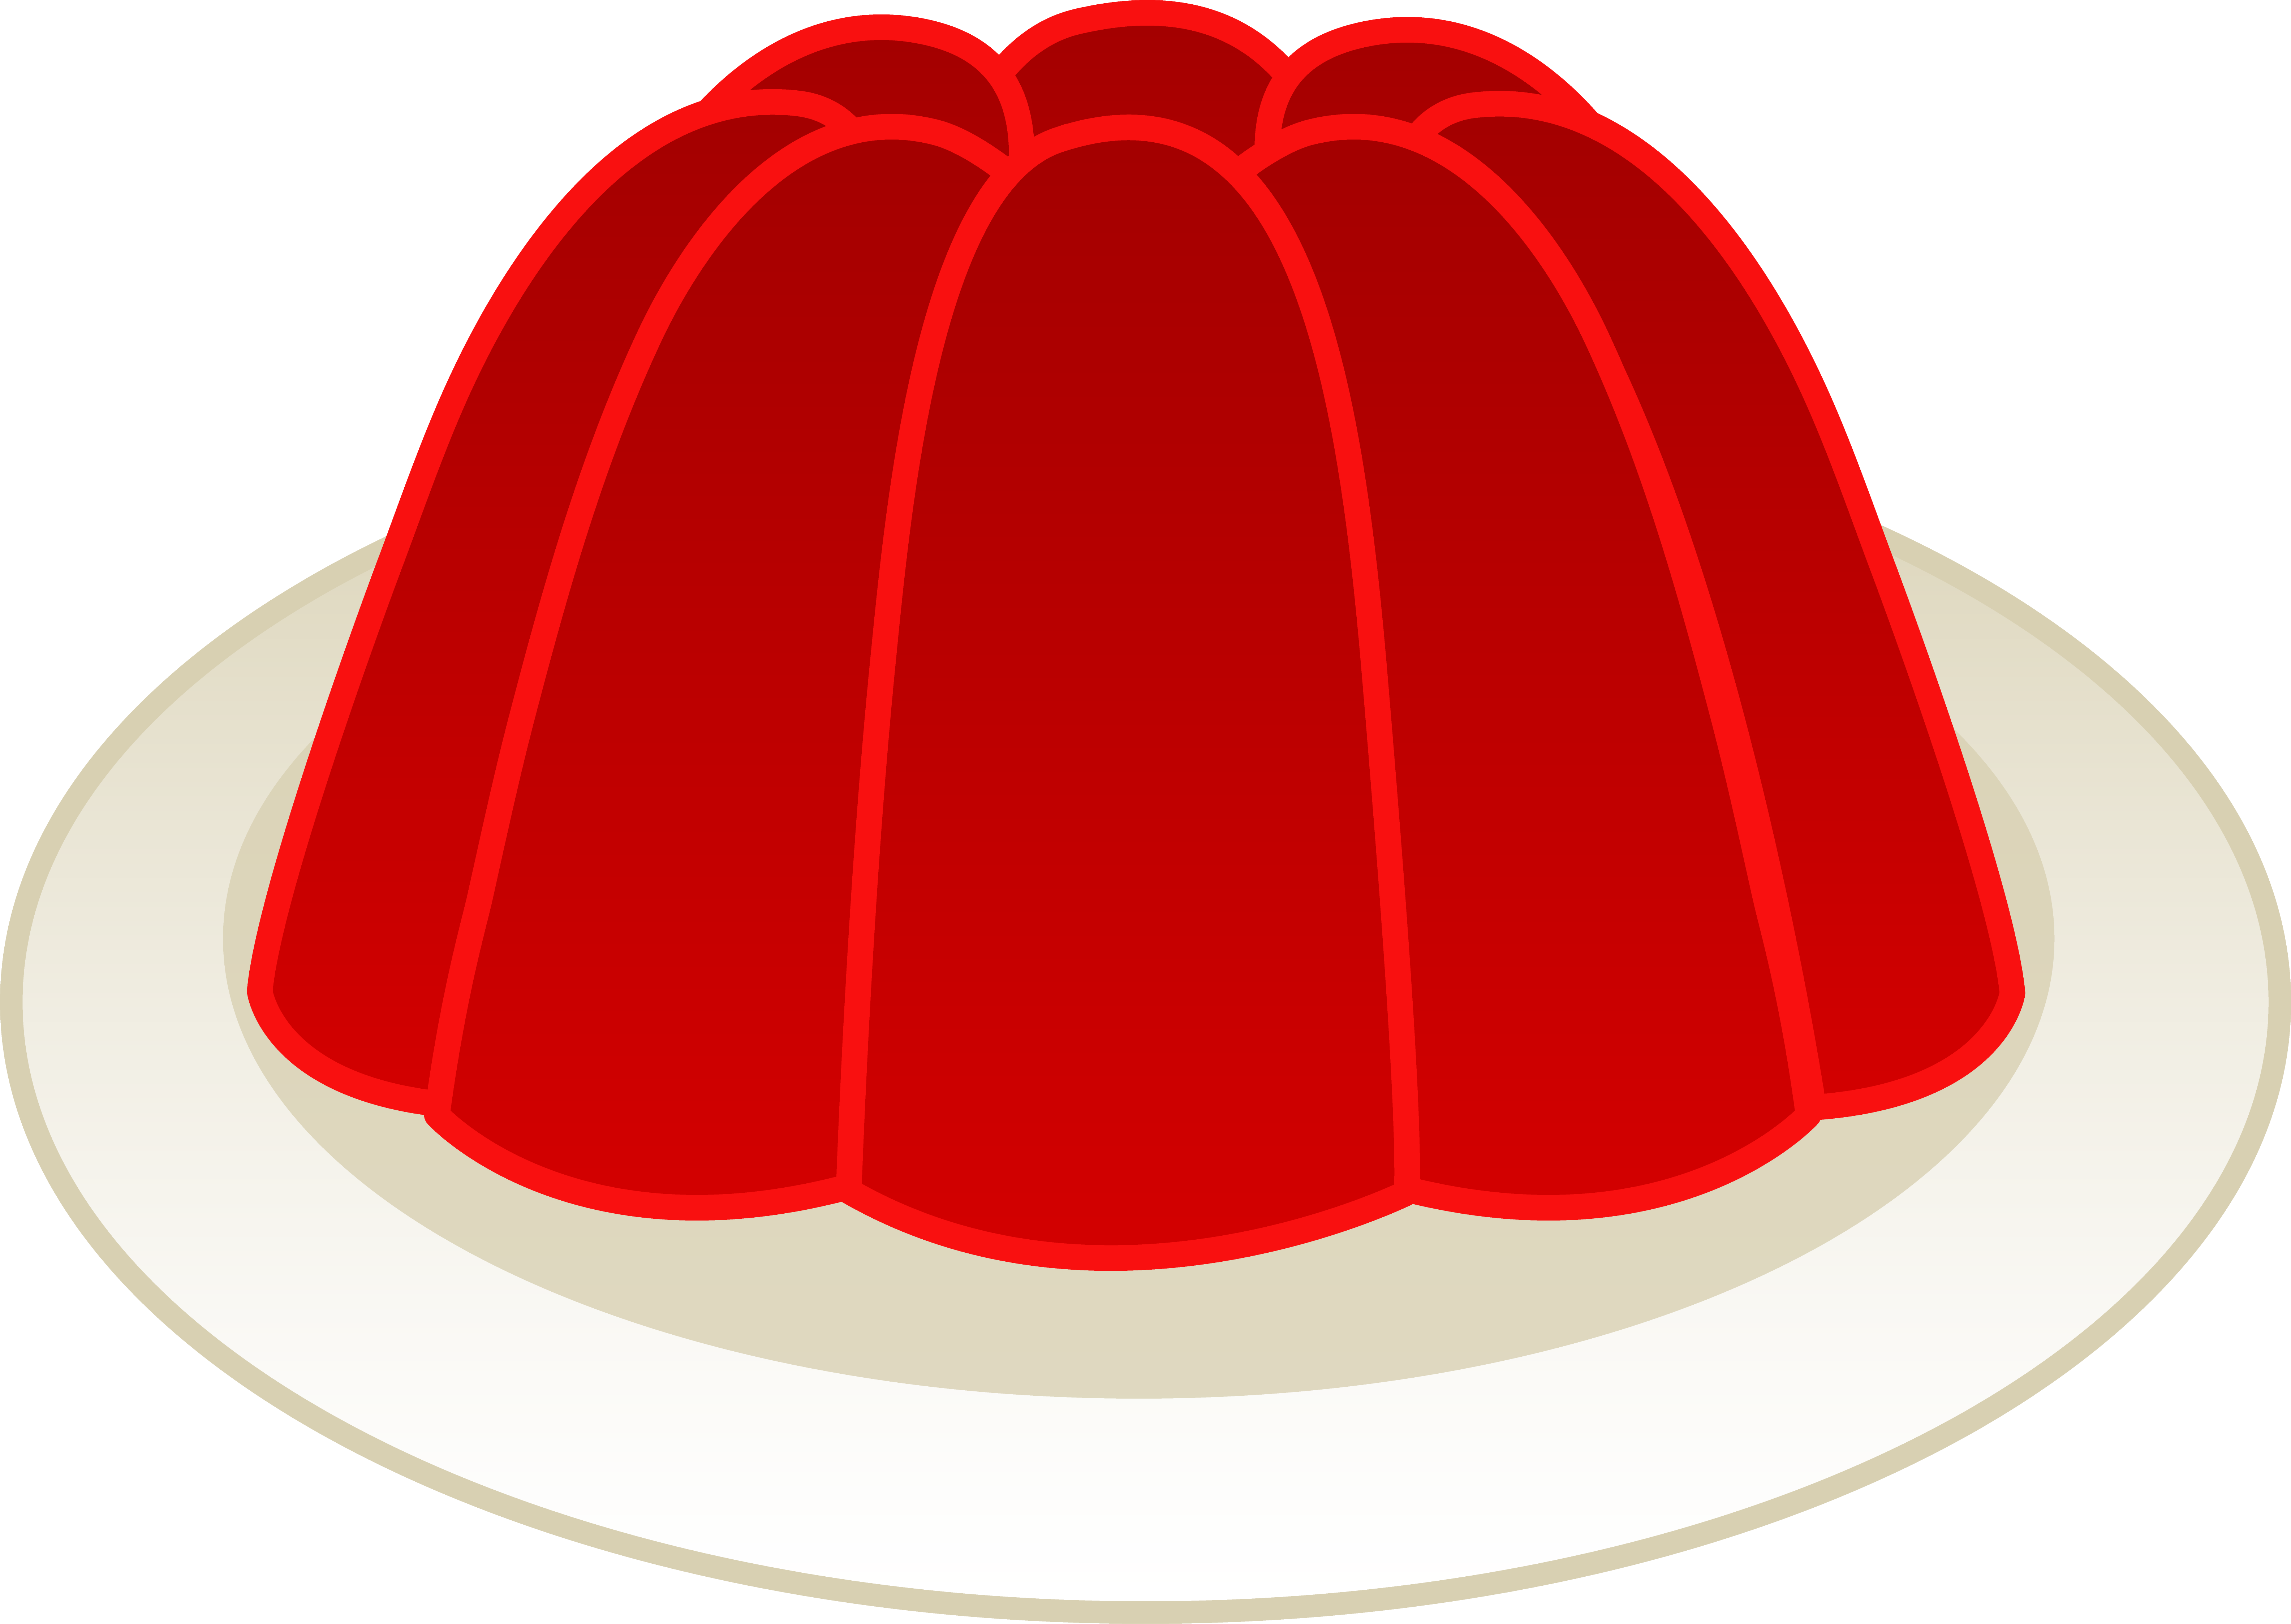 image transparent stock Jelly Clipart jelly on plate